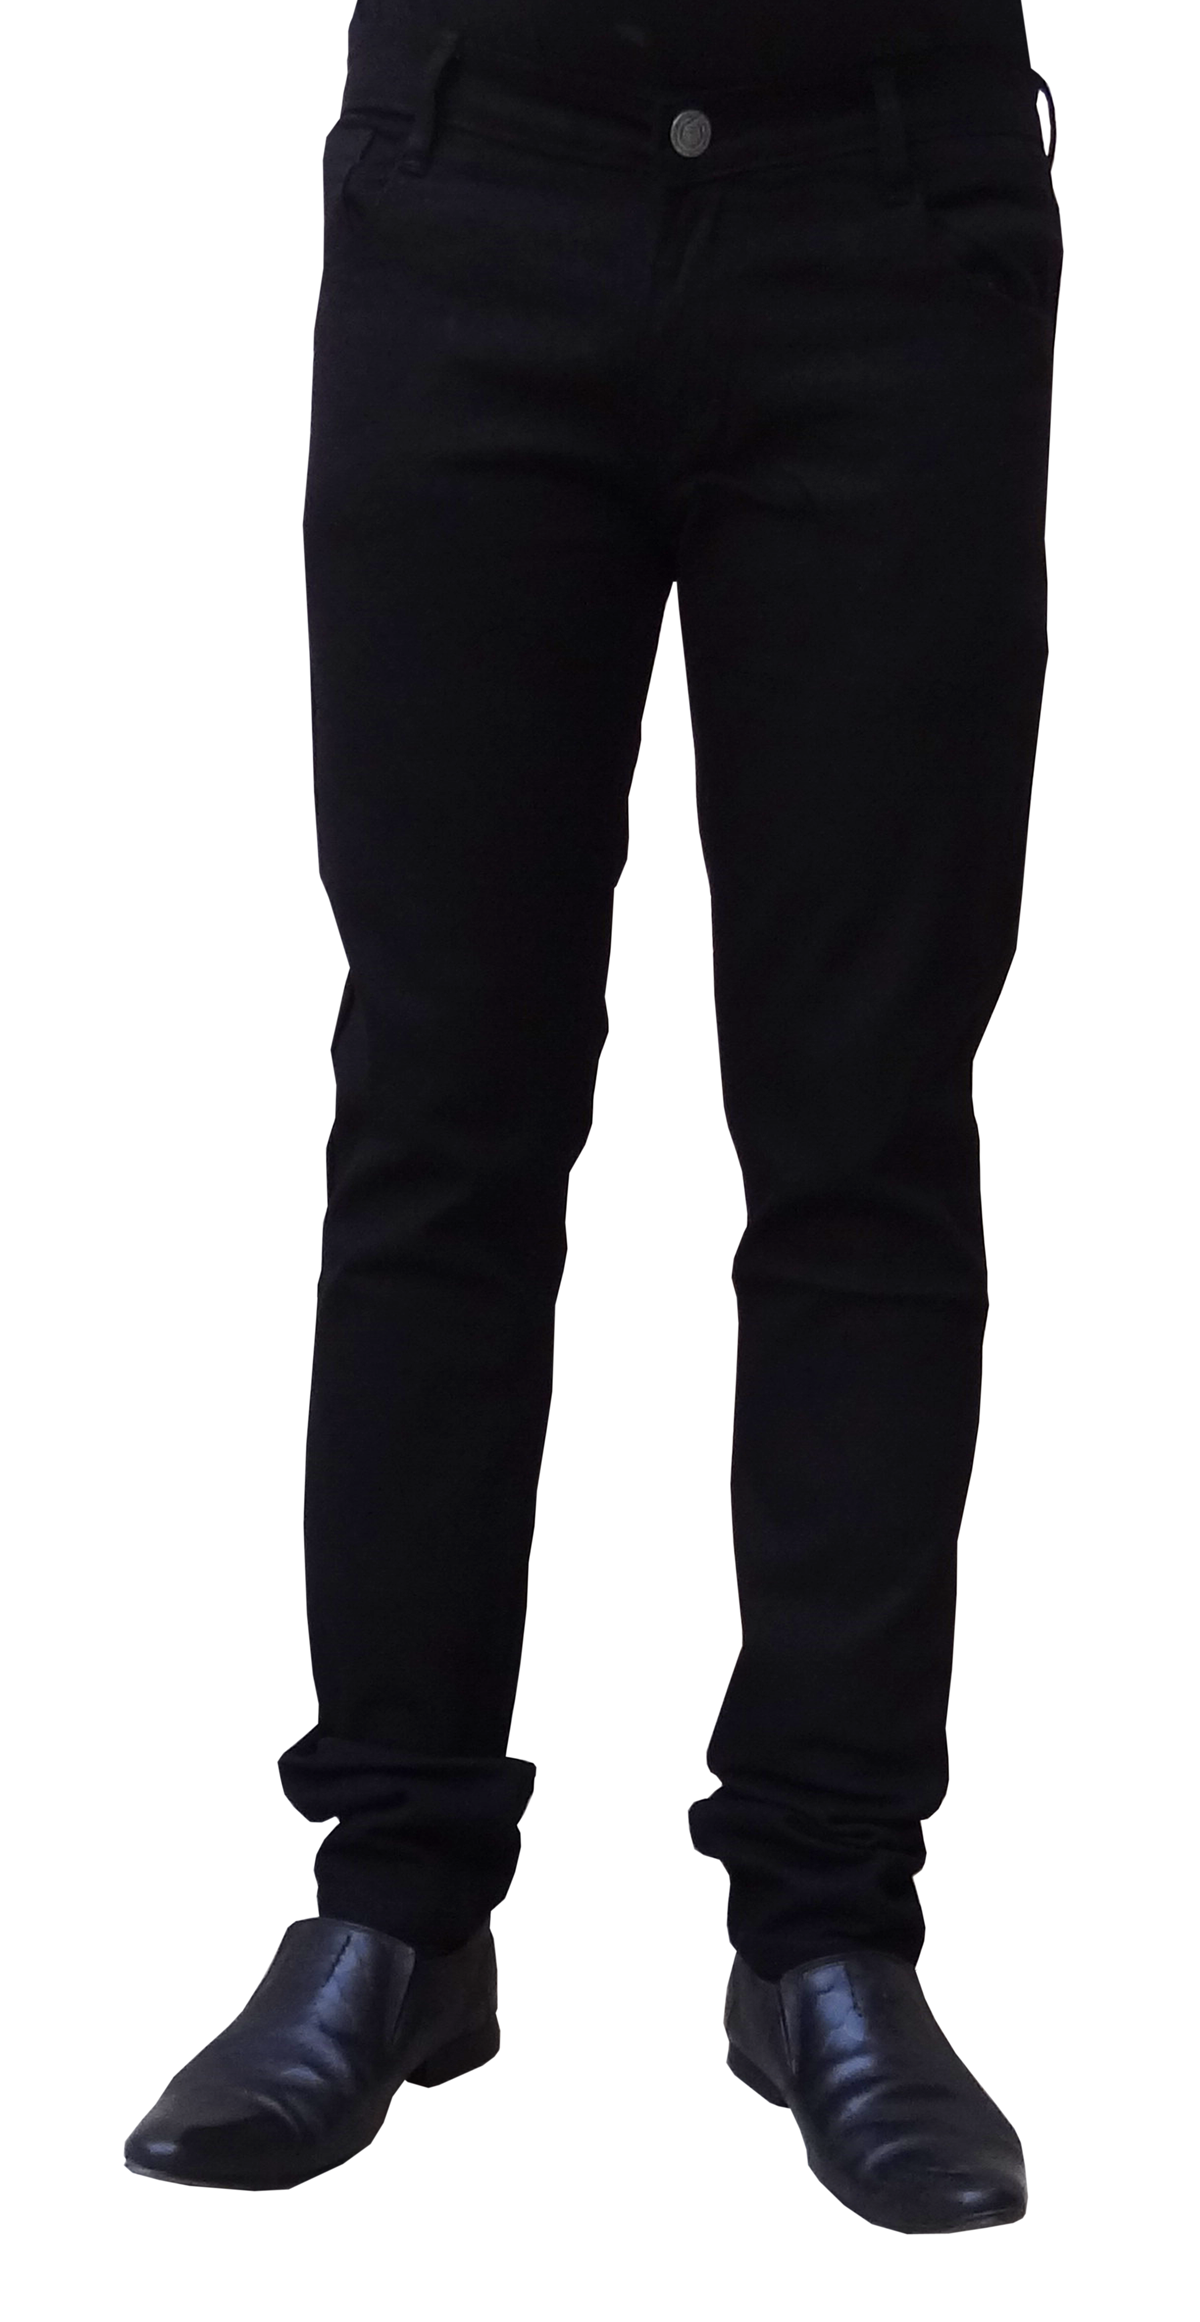 Black jeans men slim – Global fashion jeans models